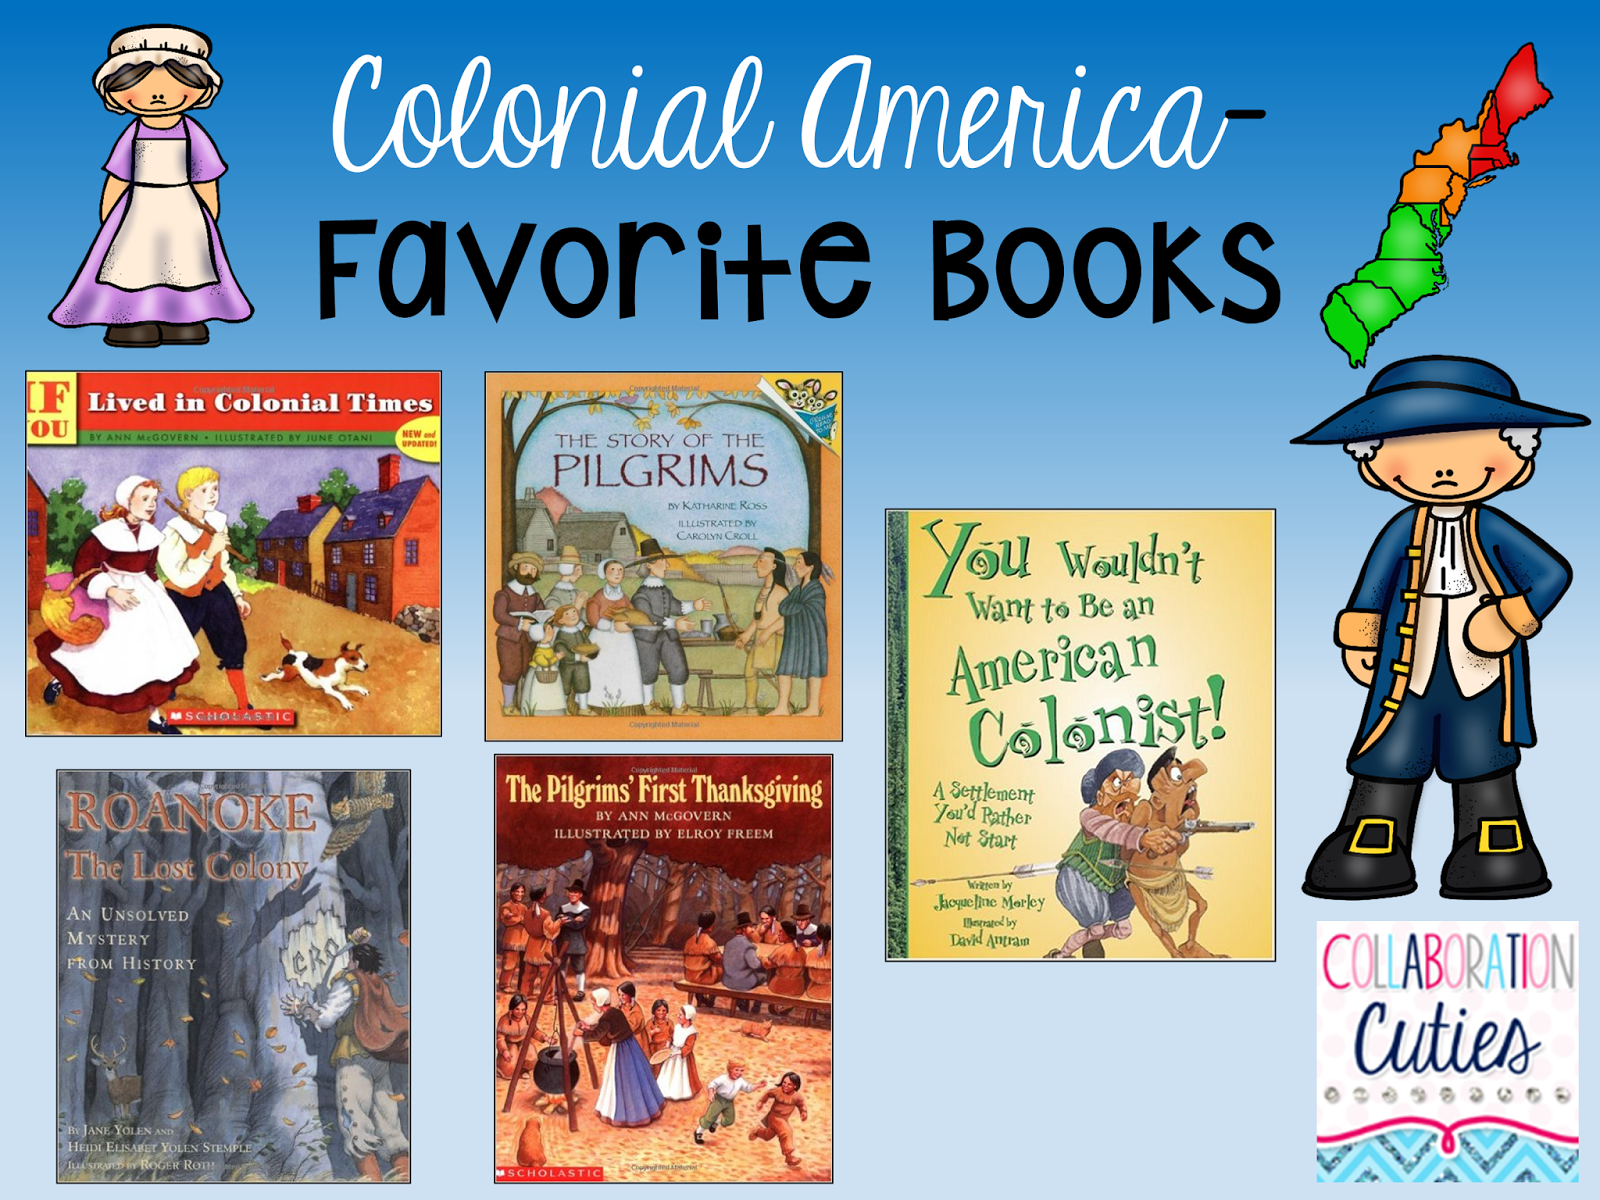 Collaboration Cuties: Teaching about Colonial America- Books